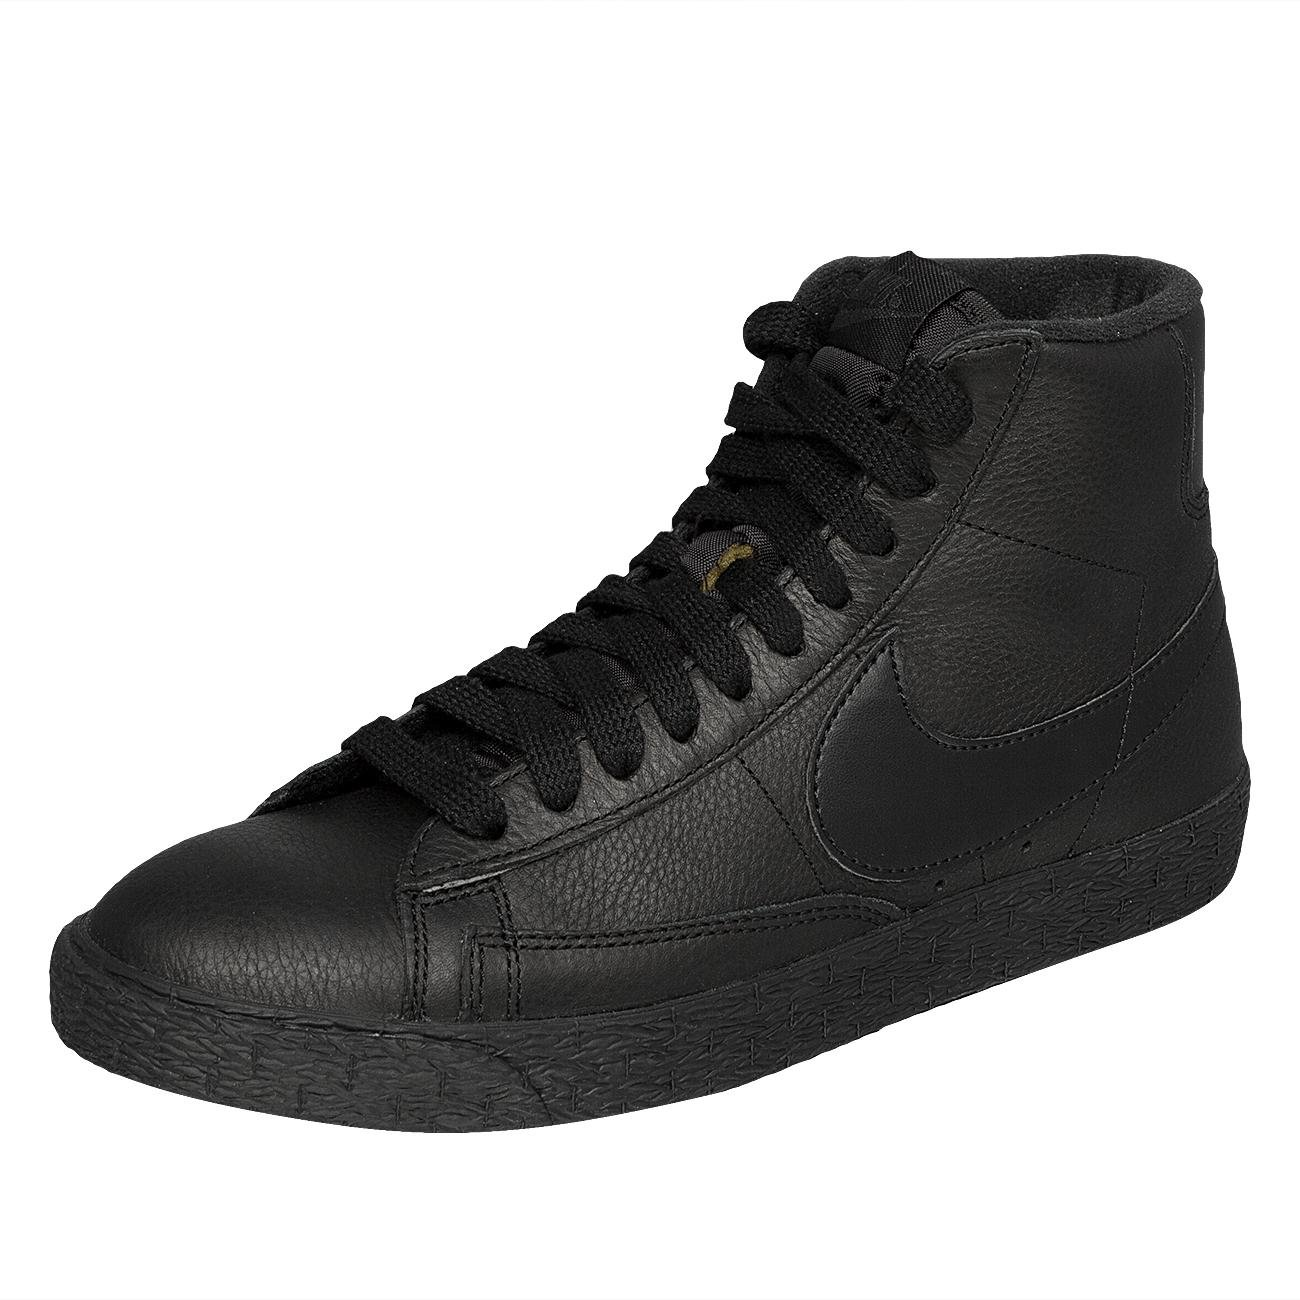 nike Womens Blazer Mid SE Hi Top Trainers 885315 Sneakers Shoes (US 6.5, black anthracite 001)